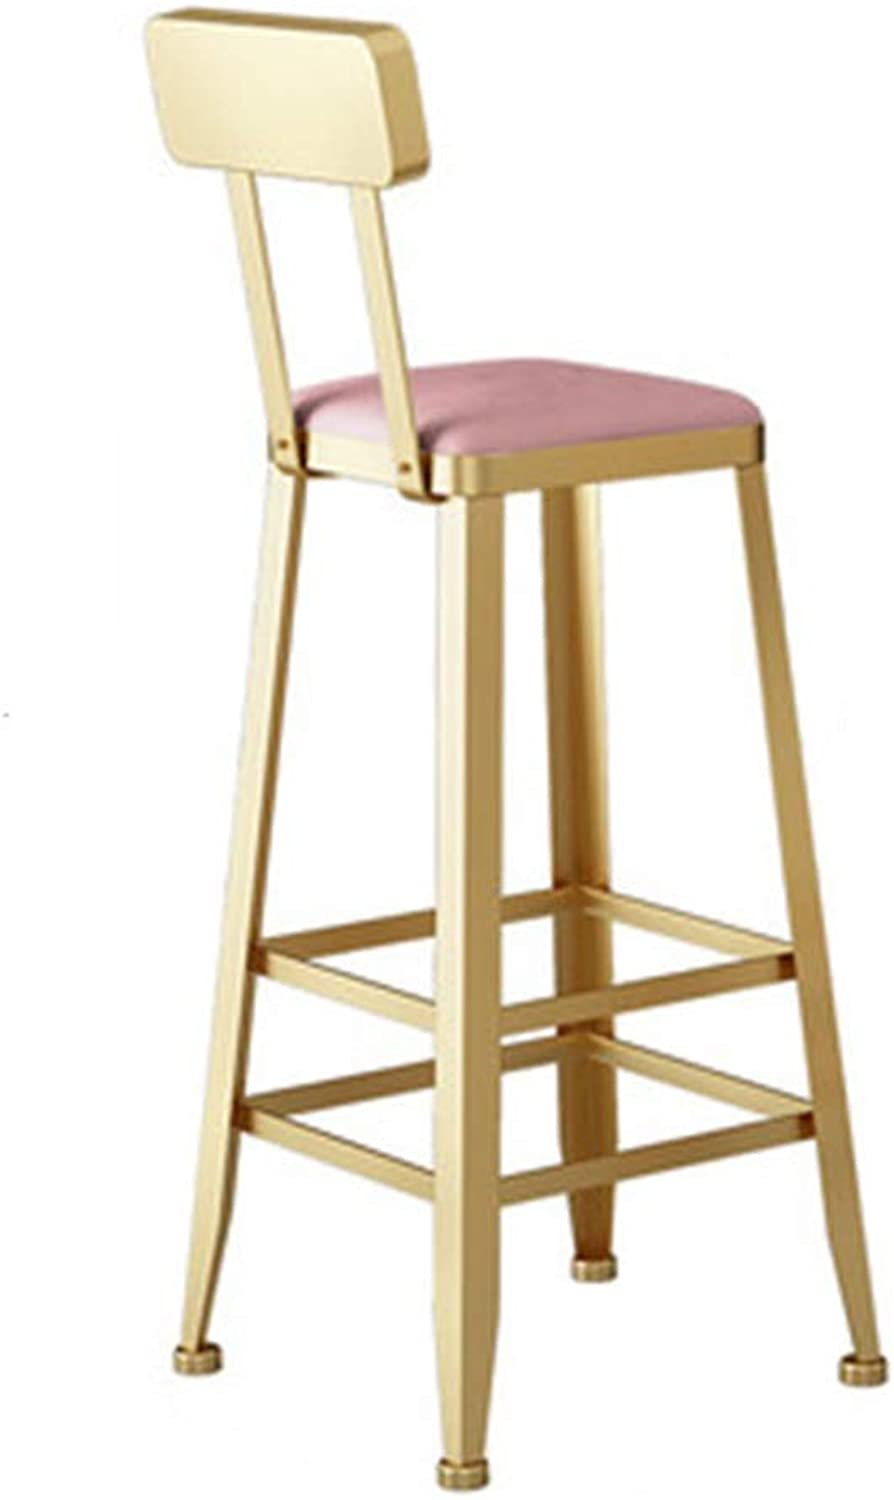 Nordic Bar Stool Creative High Foot Chair Personality Design Metal Seat Cafe Counter Restaurant Armchair Household 0527A (color   Pink, Size   75cm Seat Height)